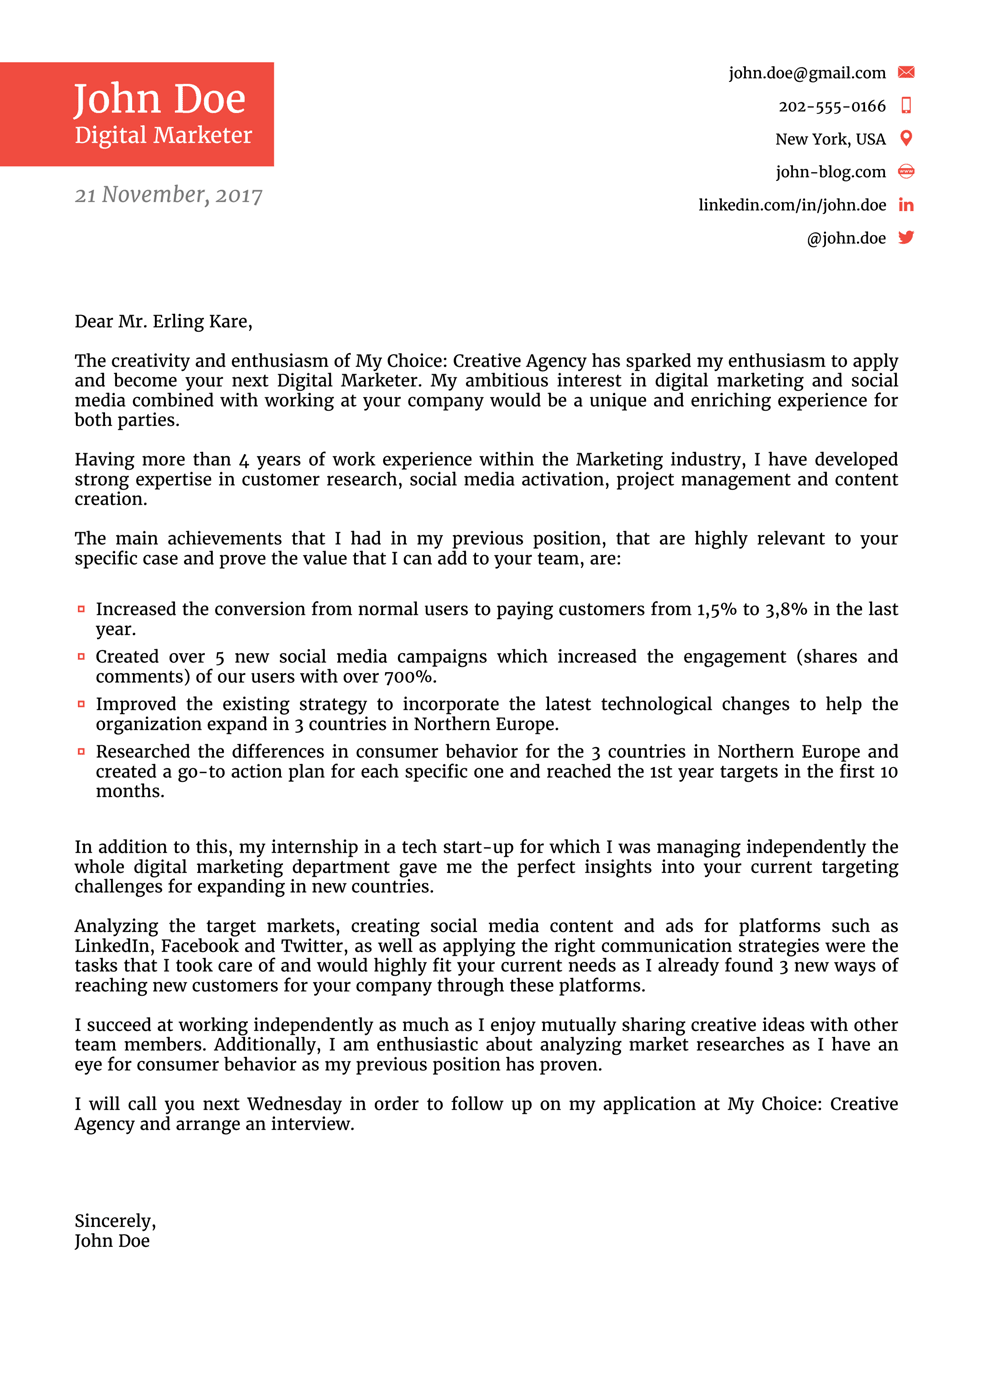 Cover Letter For Job Dentist, Functional Cover Letter Template, Cover Letter For Job Dentist